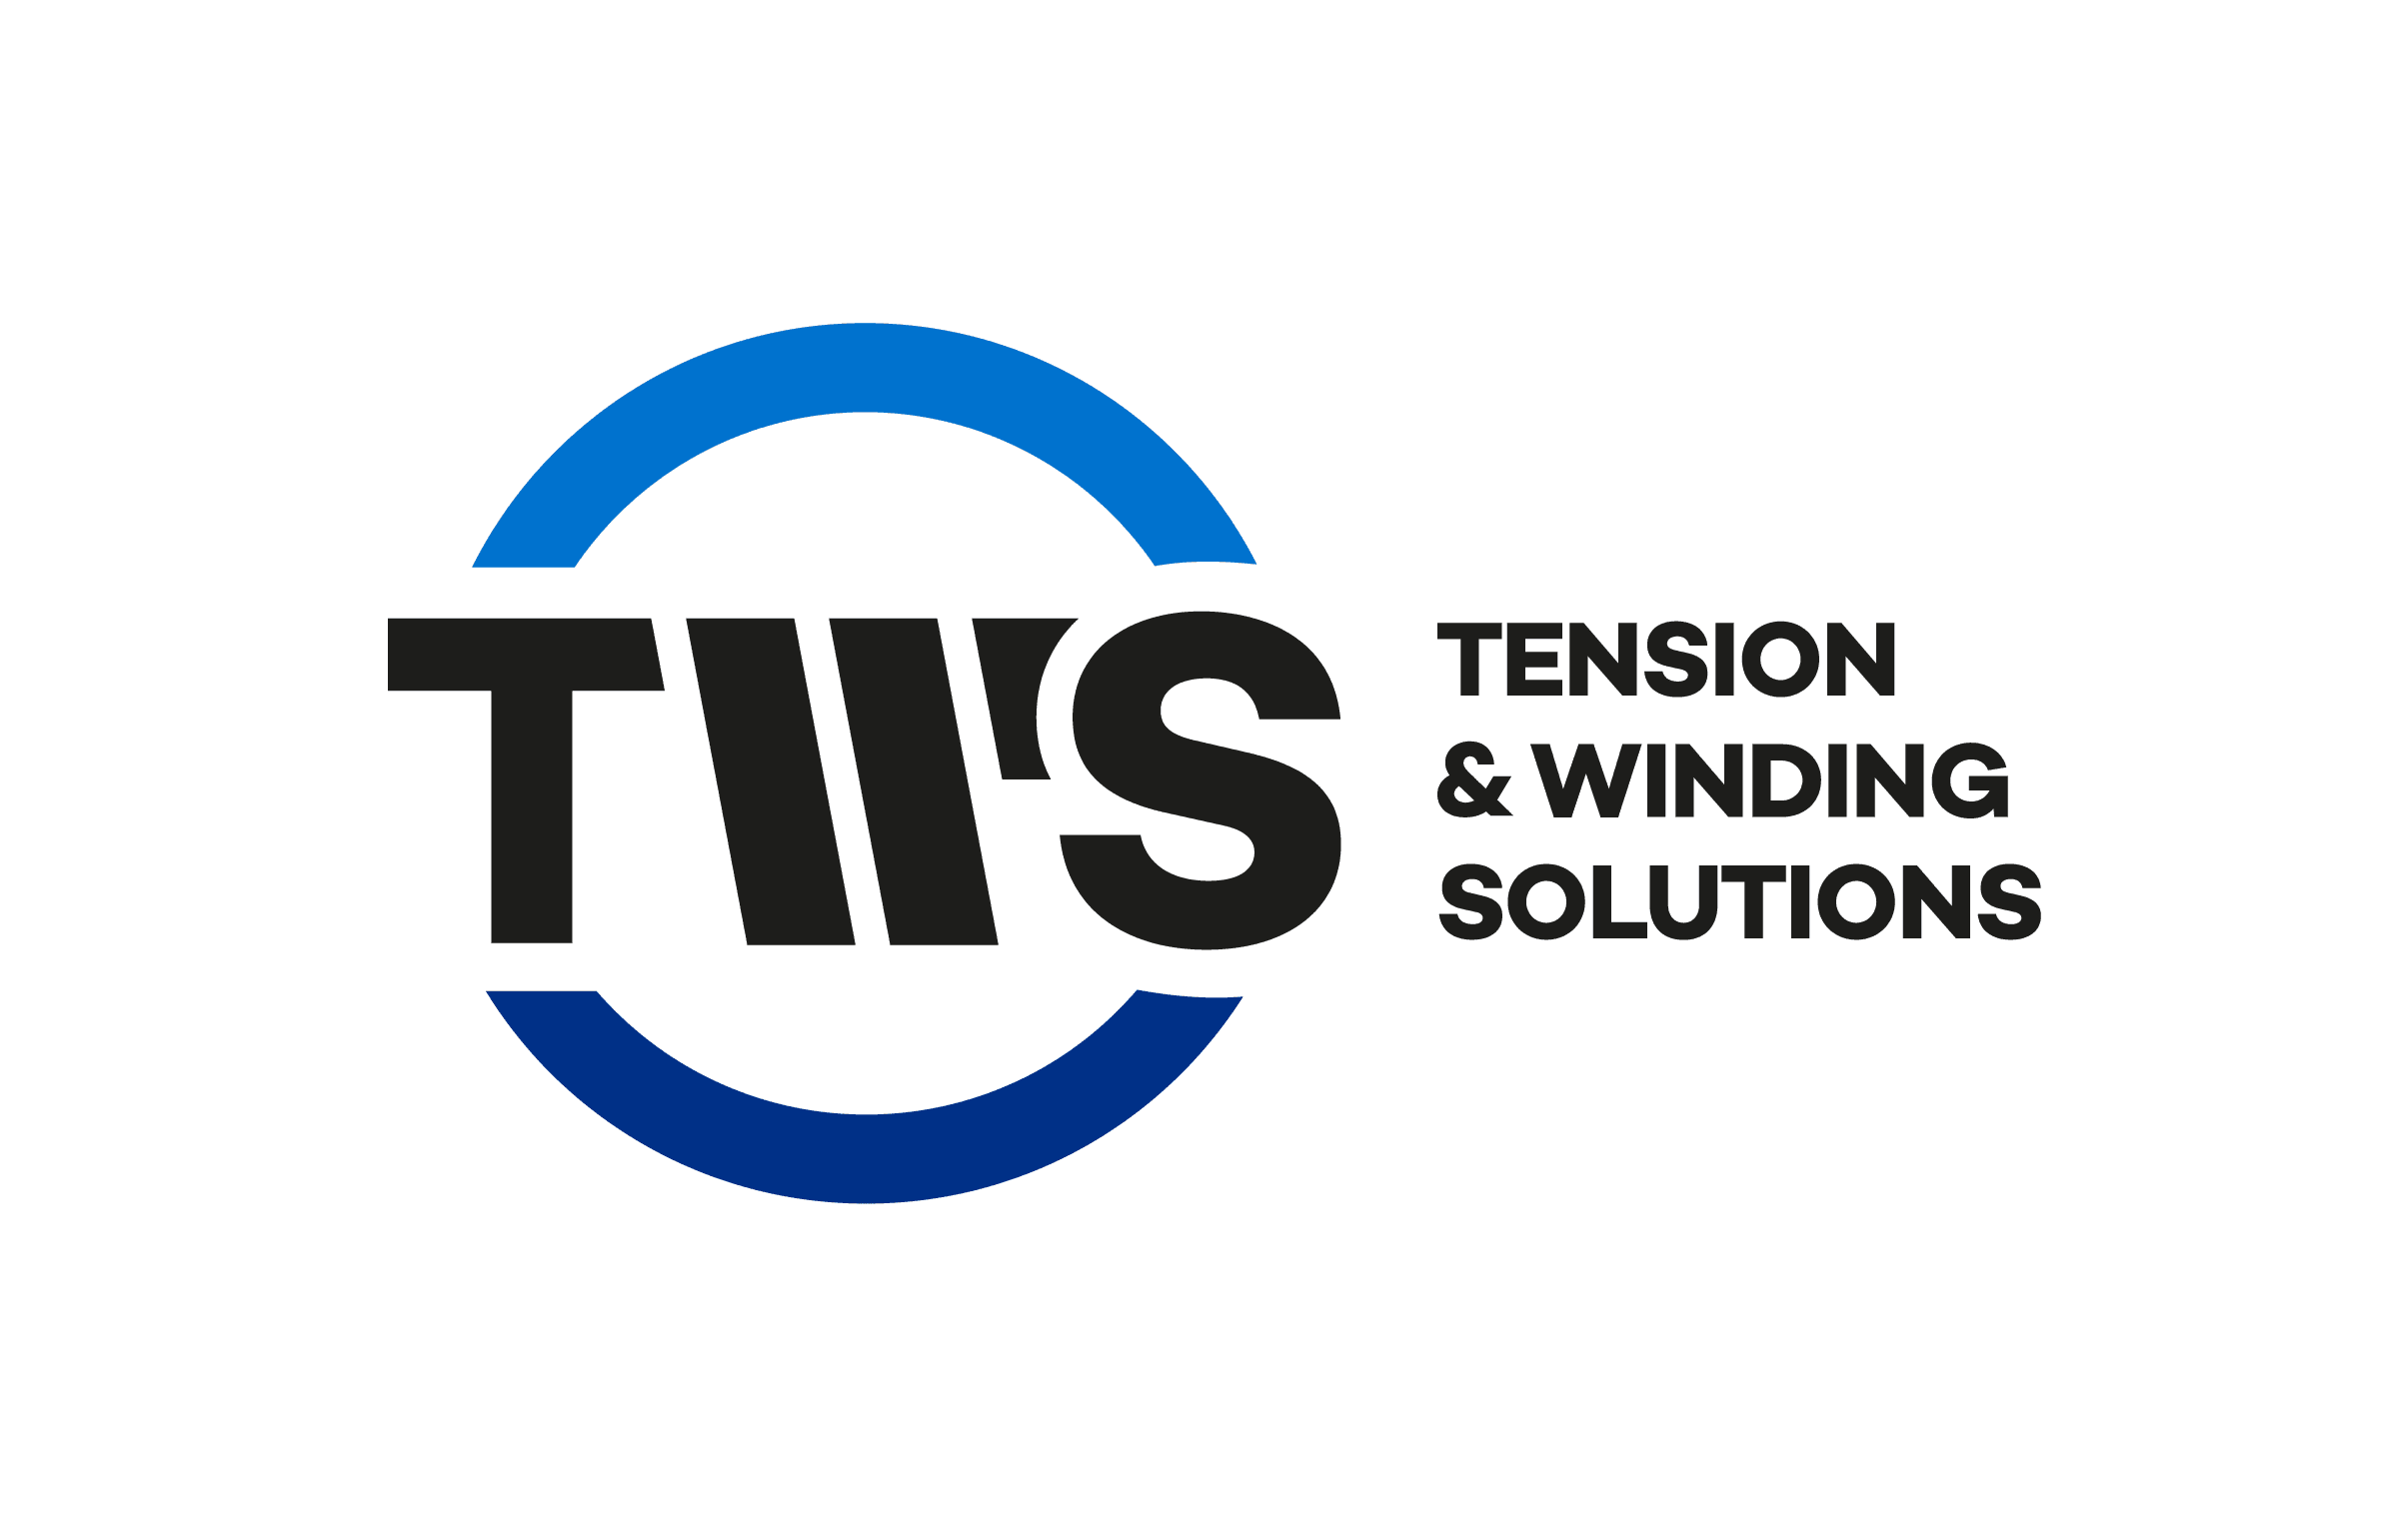 Tension & Winding Solutions TWS